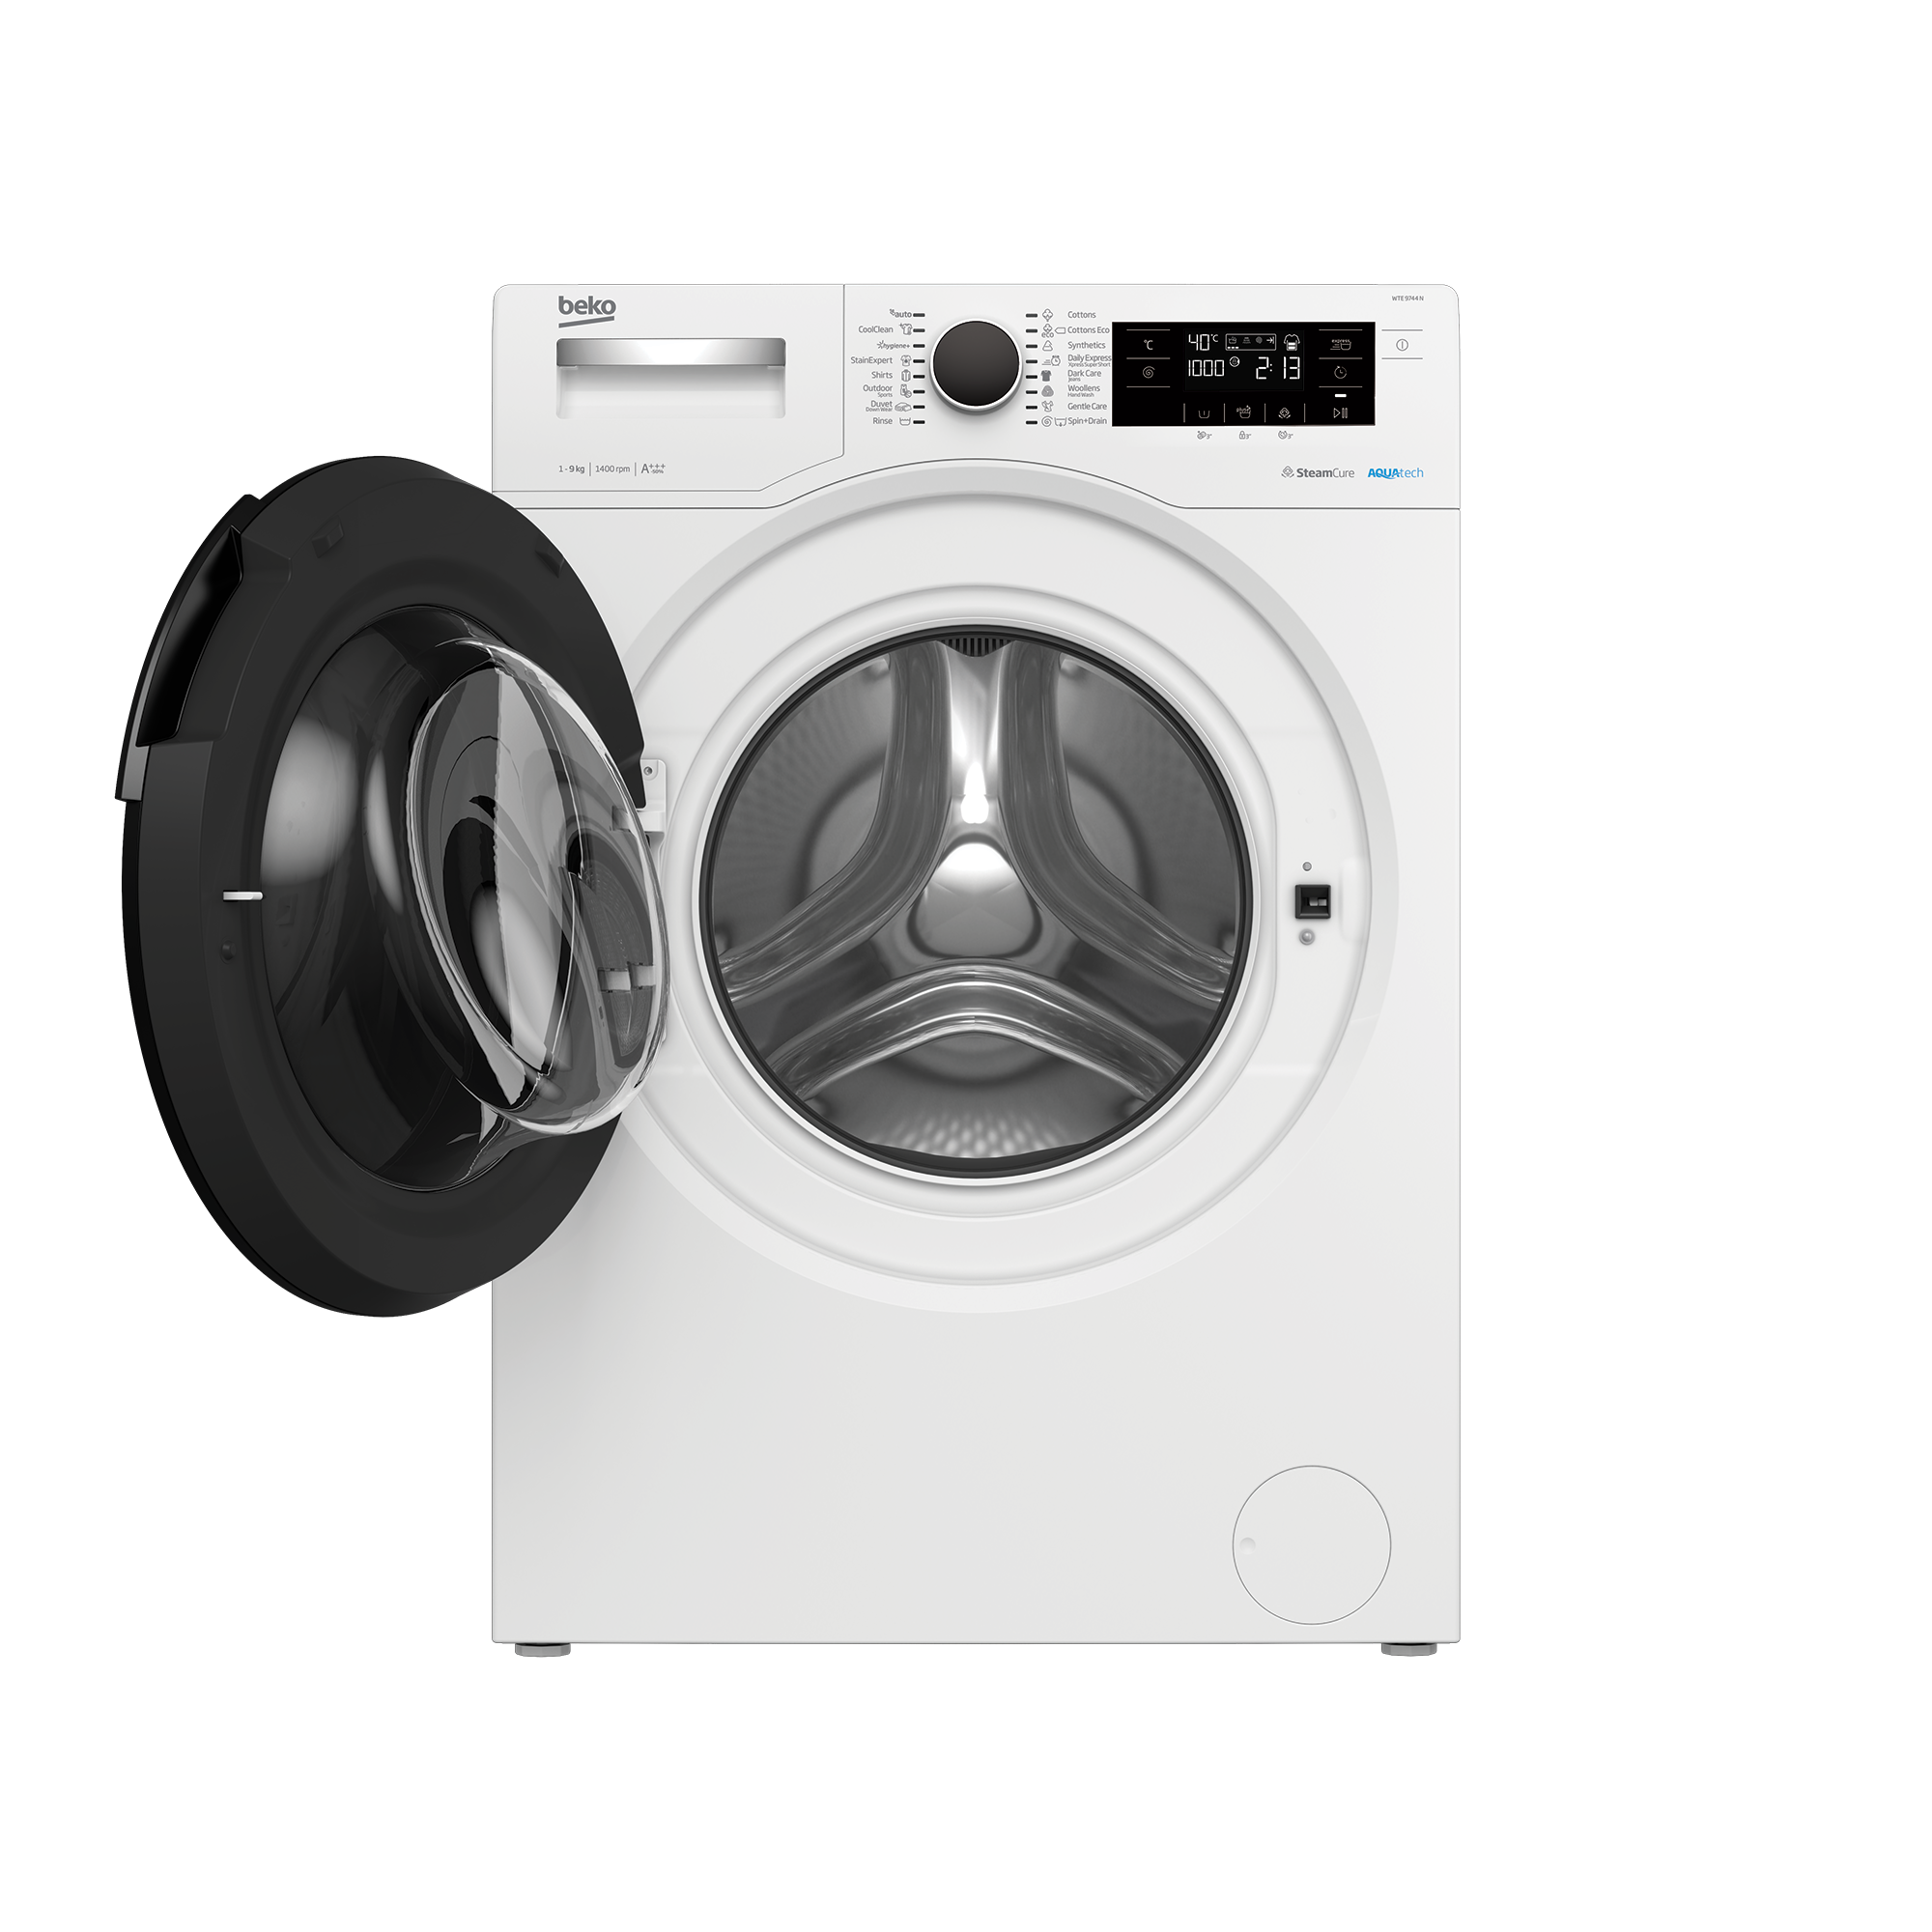 Freestanding Washing Machine (9 kg, 1400 rpm) WTE 9744 N